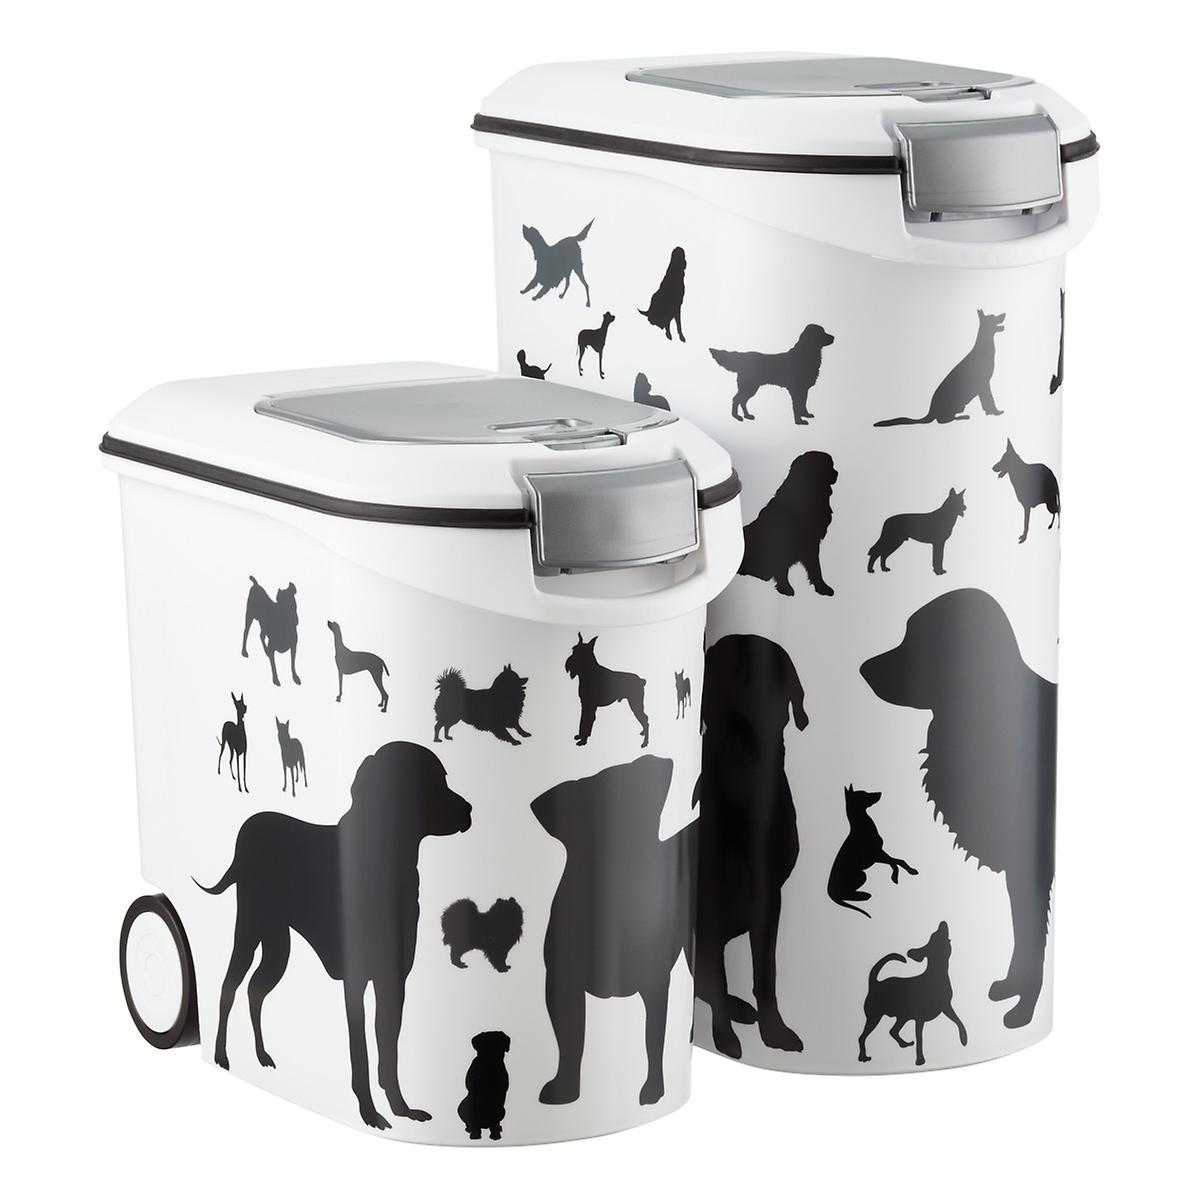 Dry Dog Food Containers The Container Store